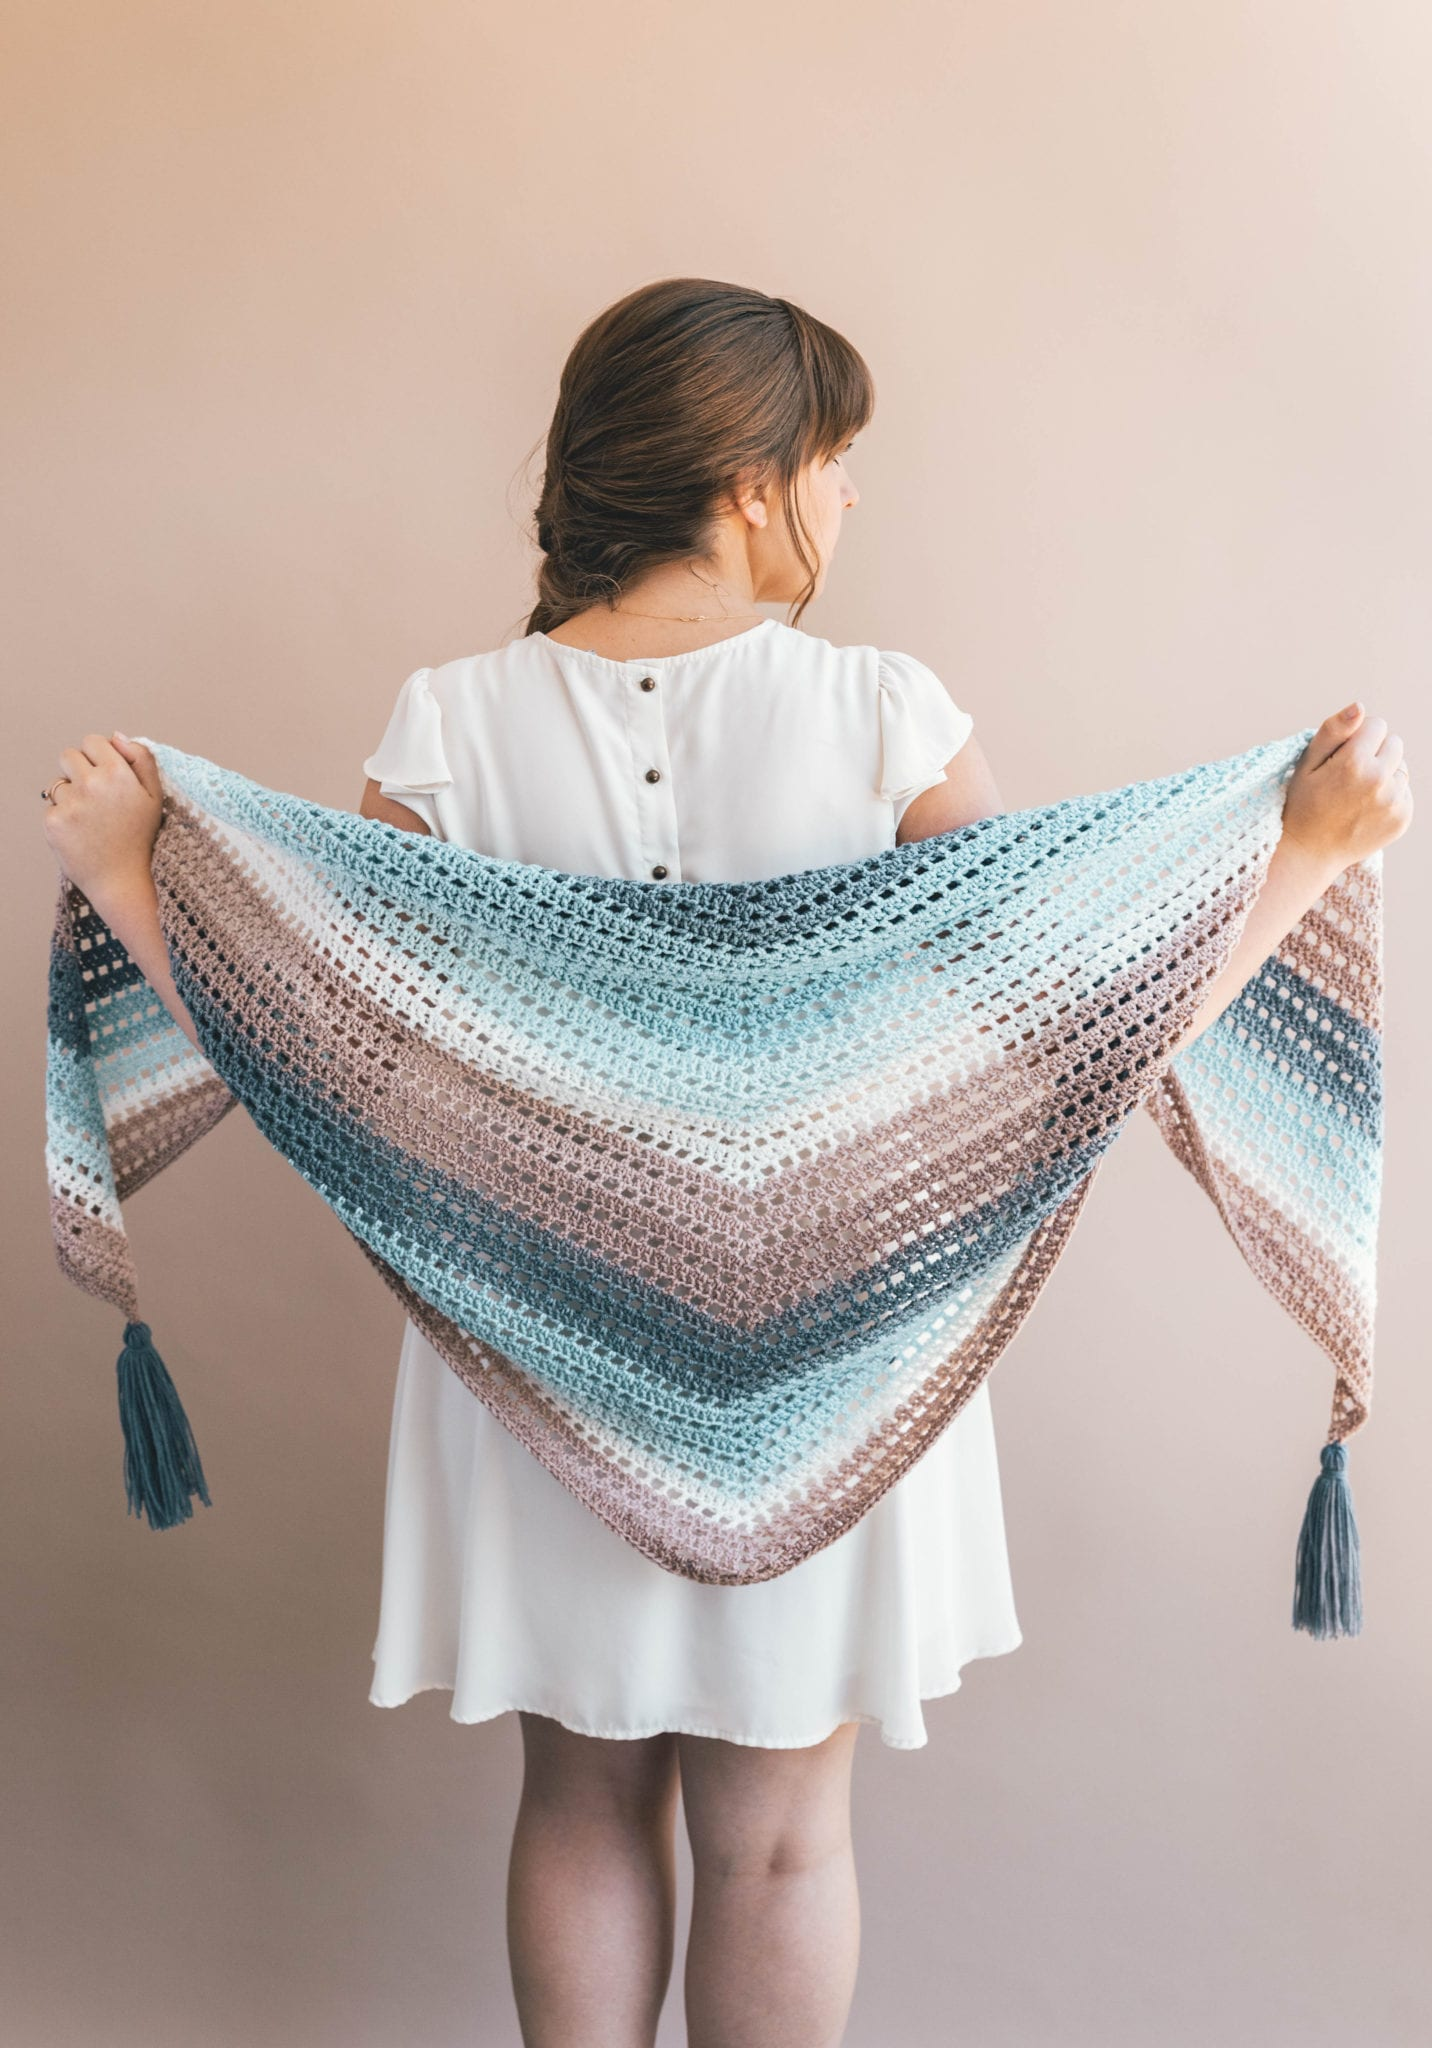 cake yarn creates a stunning faded effect in this crochet wrap shawl.